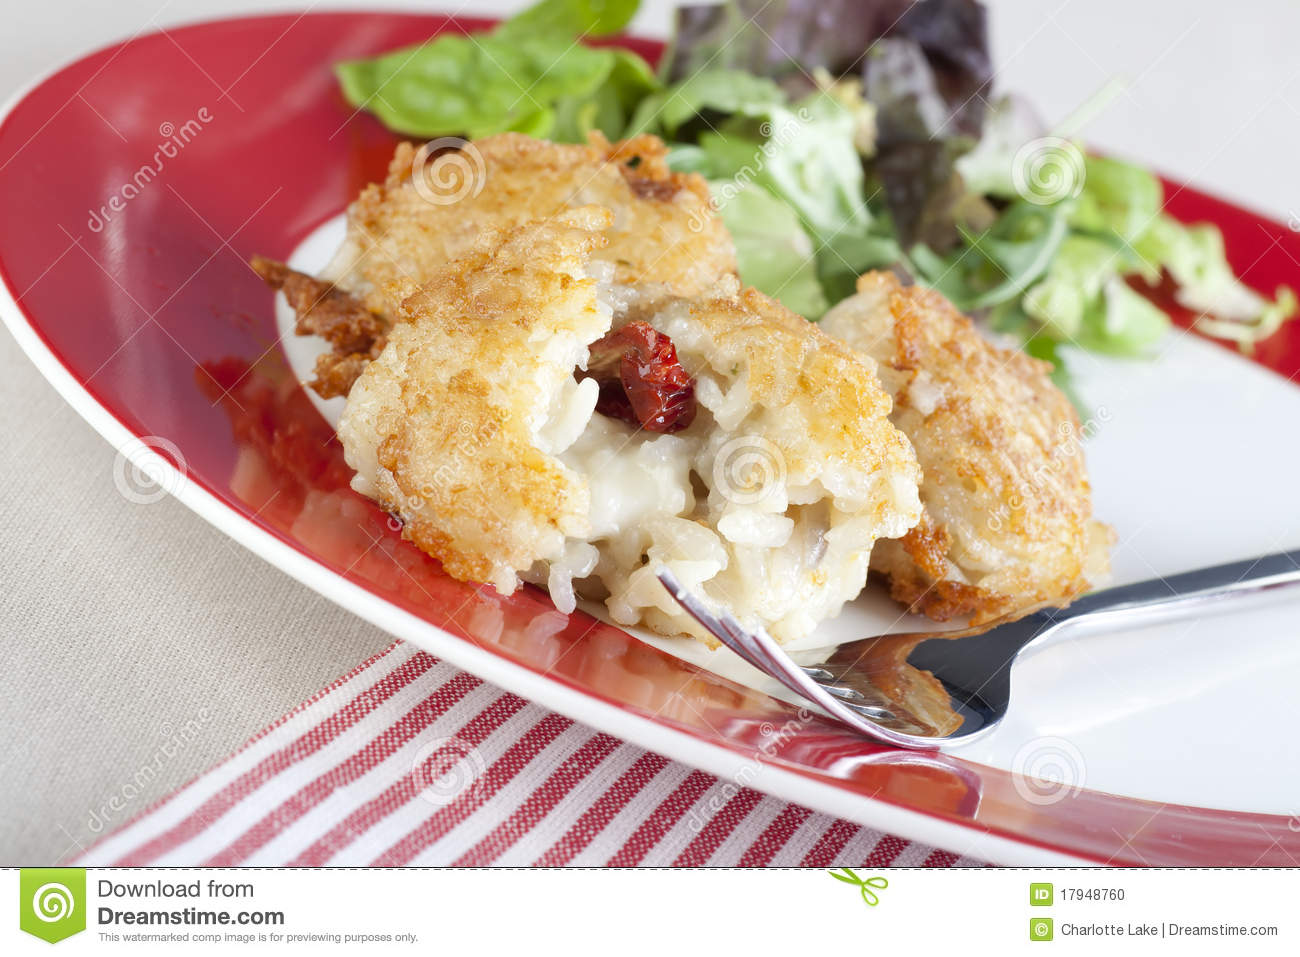 Risotto And Mozzarella Appetizer Stock Photo - Image: 17948760